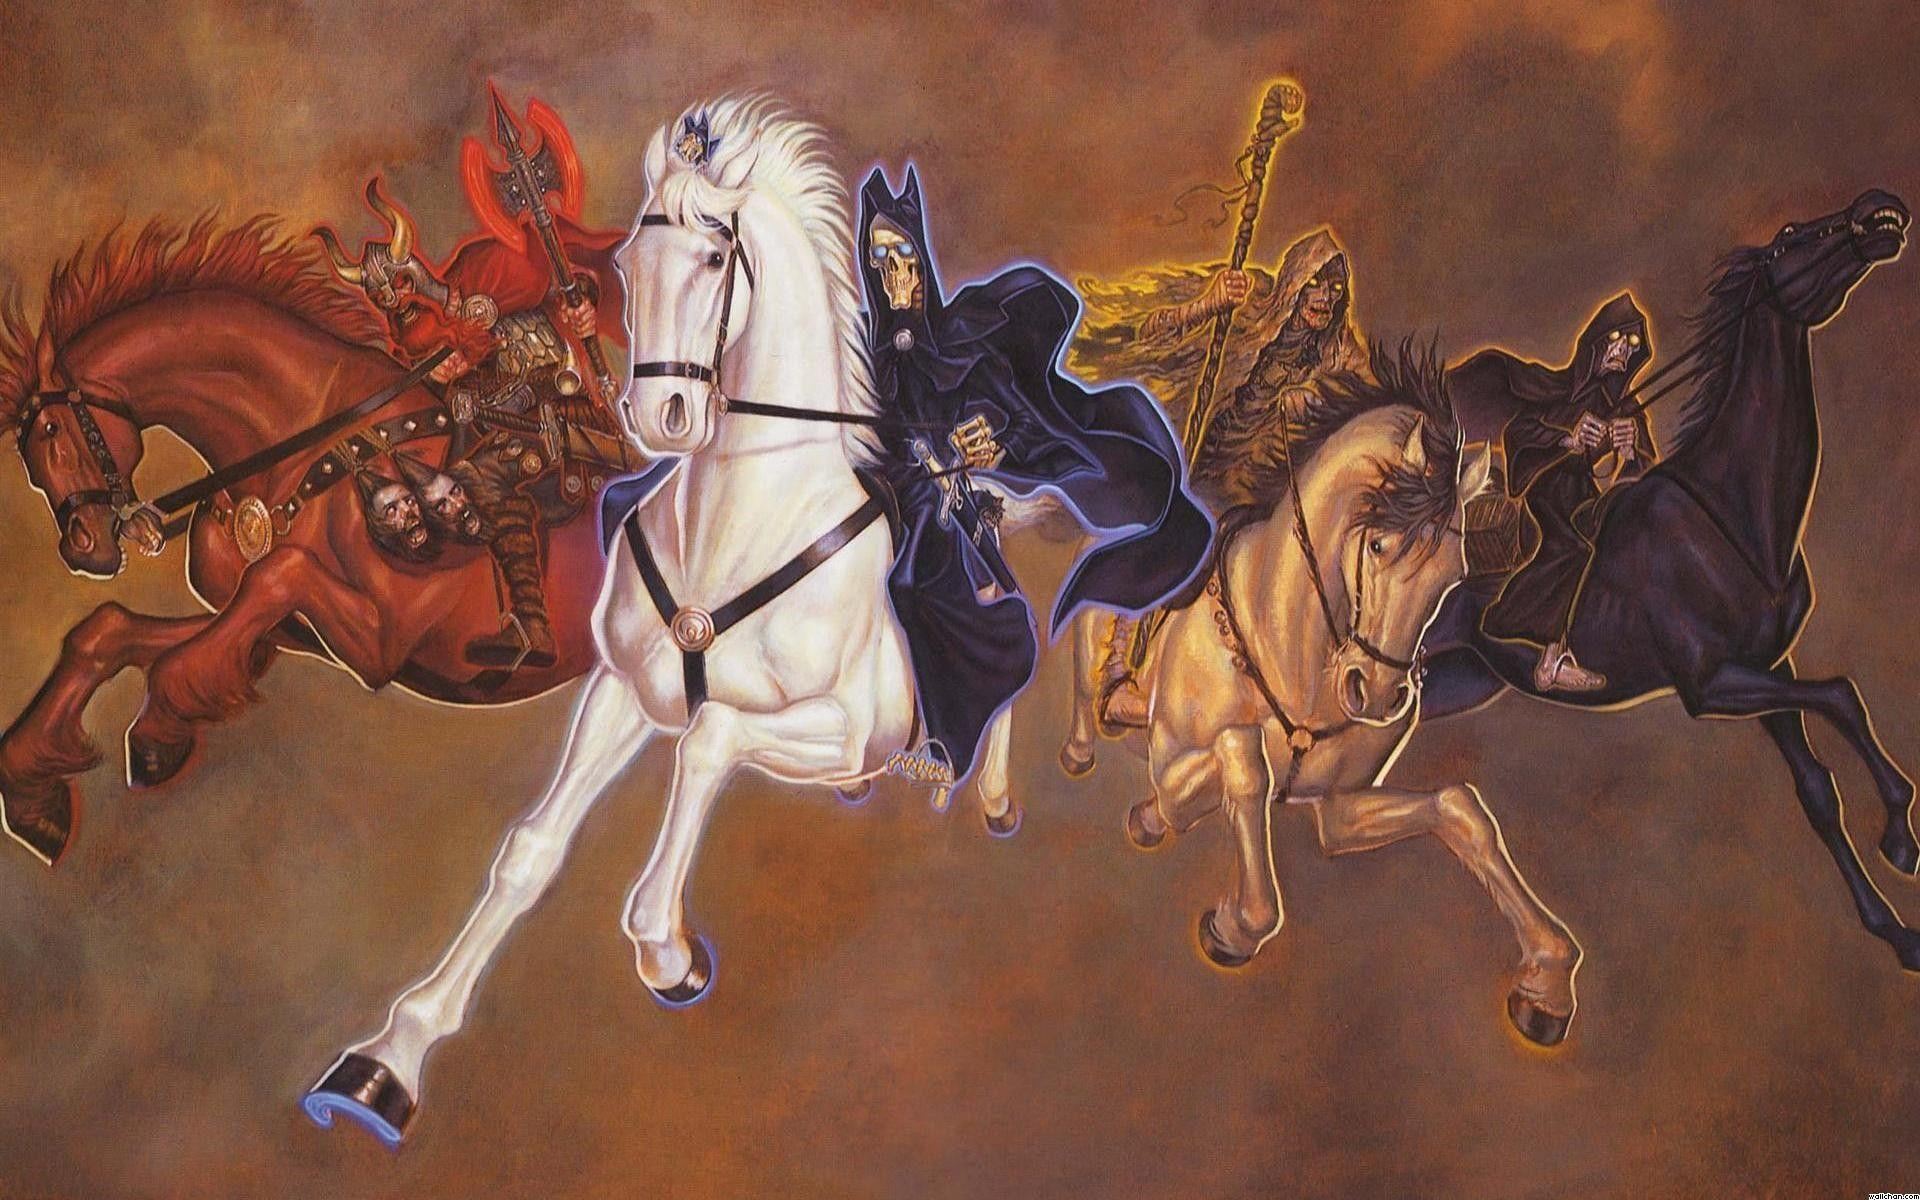 Image For > Four Horsemen Of The Apocalypse Wallpapers